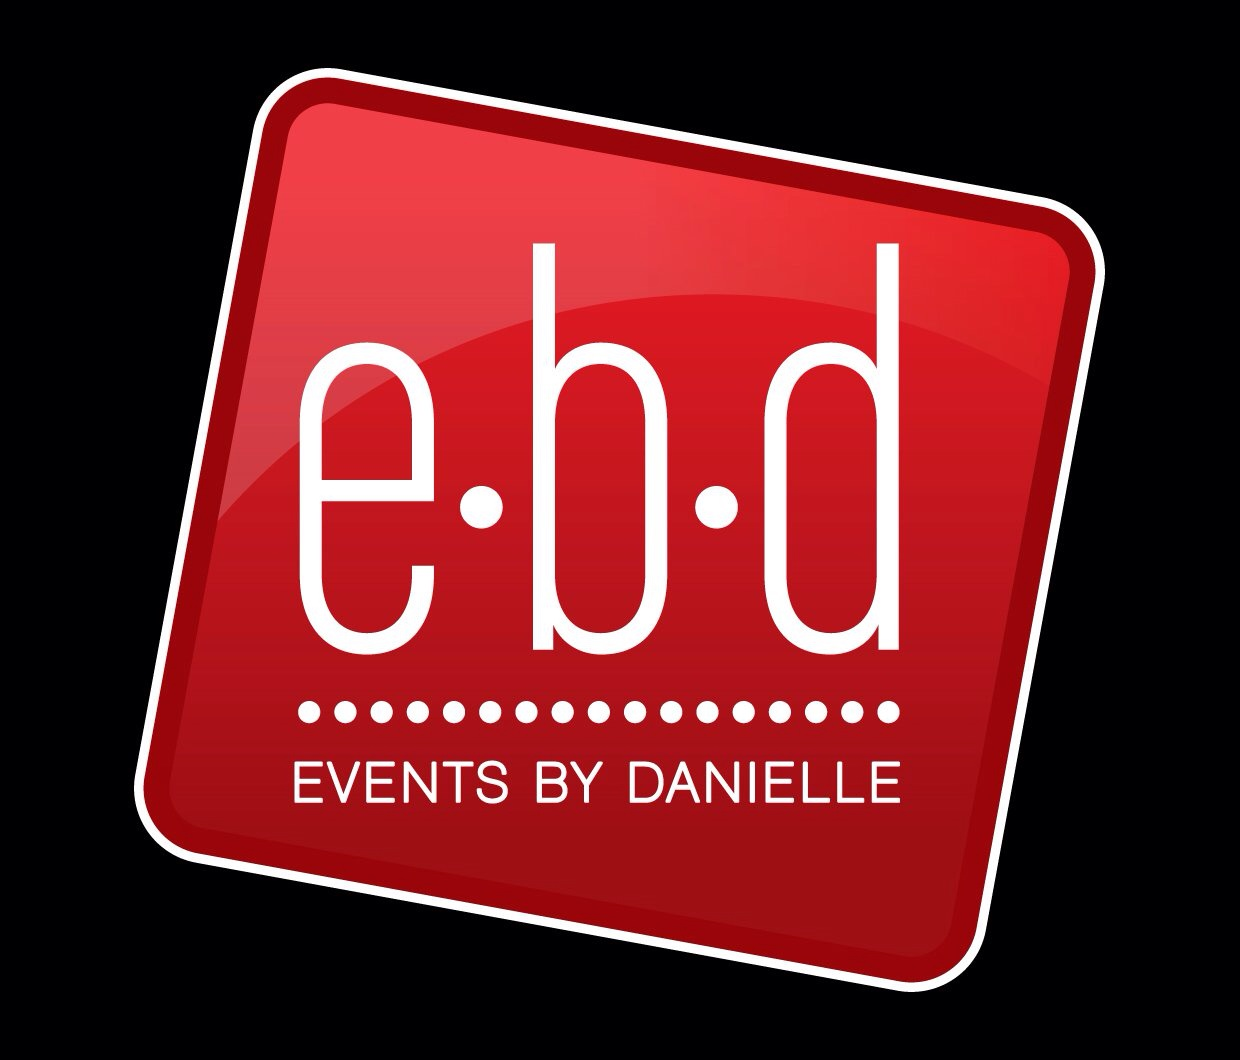 Posted by Events by Danielle - A Event Planner professional